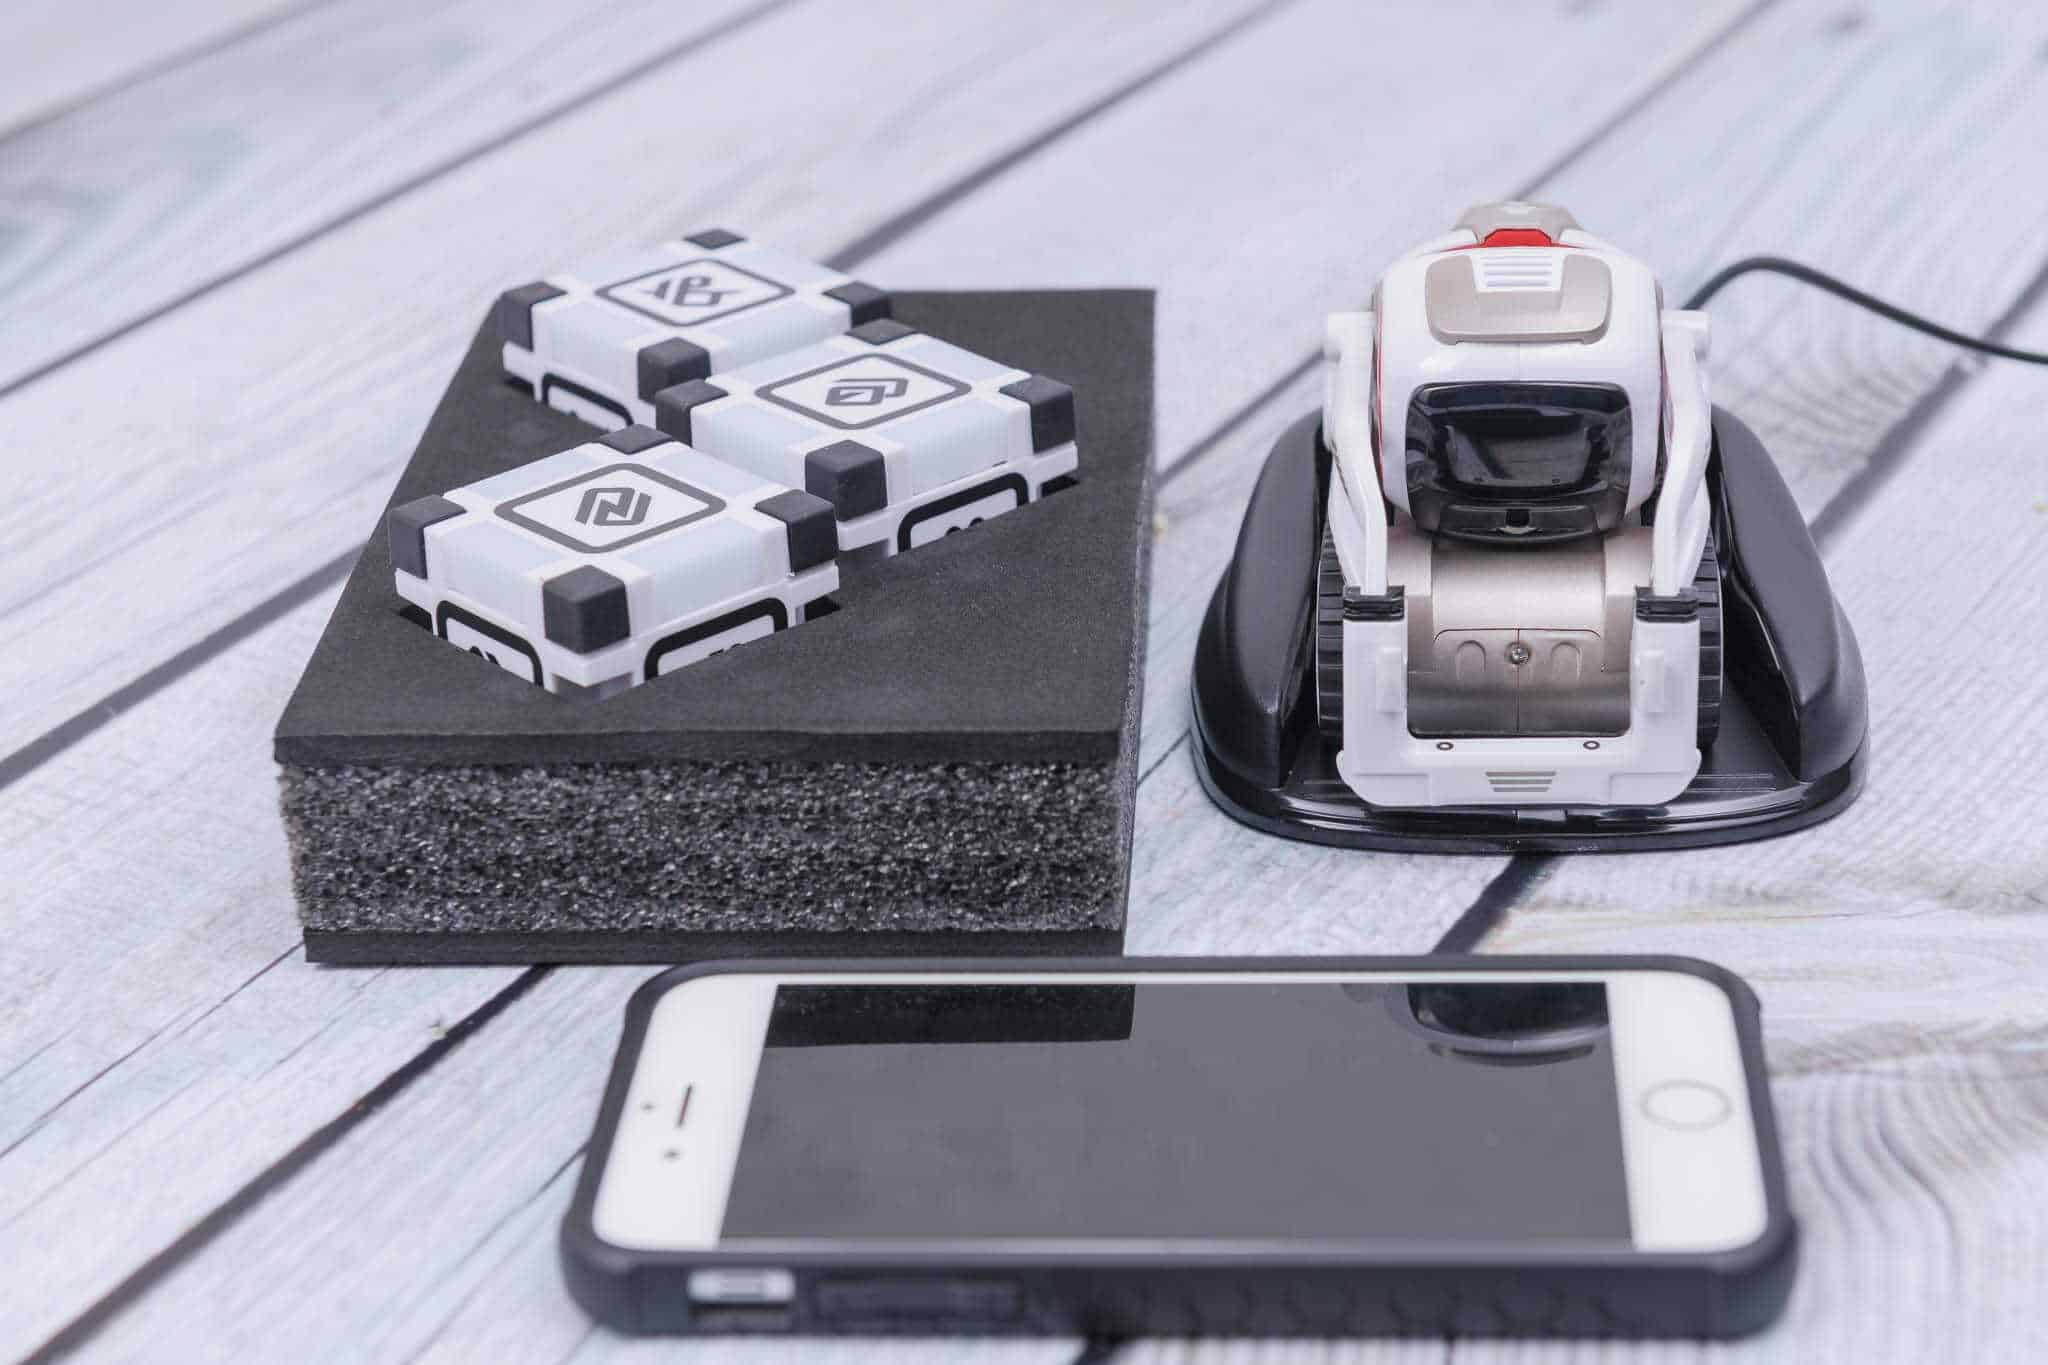 Anki Cozmo Robot Review - Charging Pod and Phone